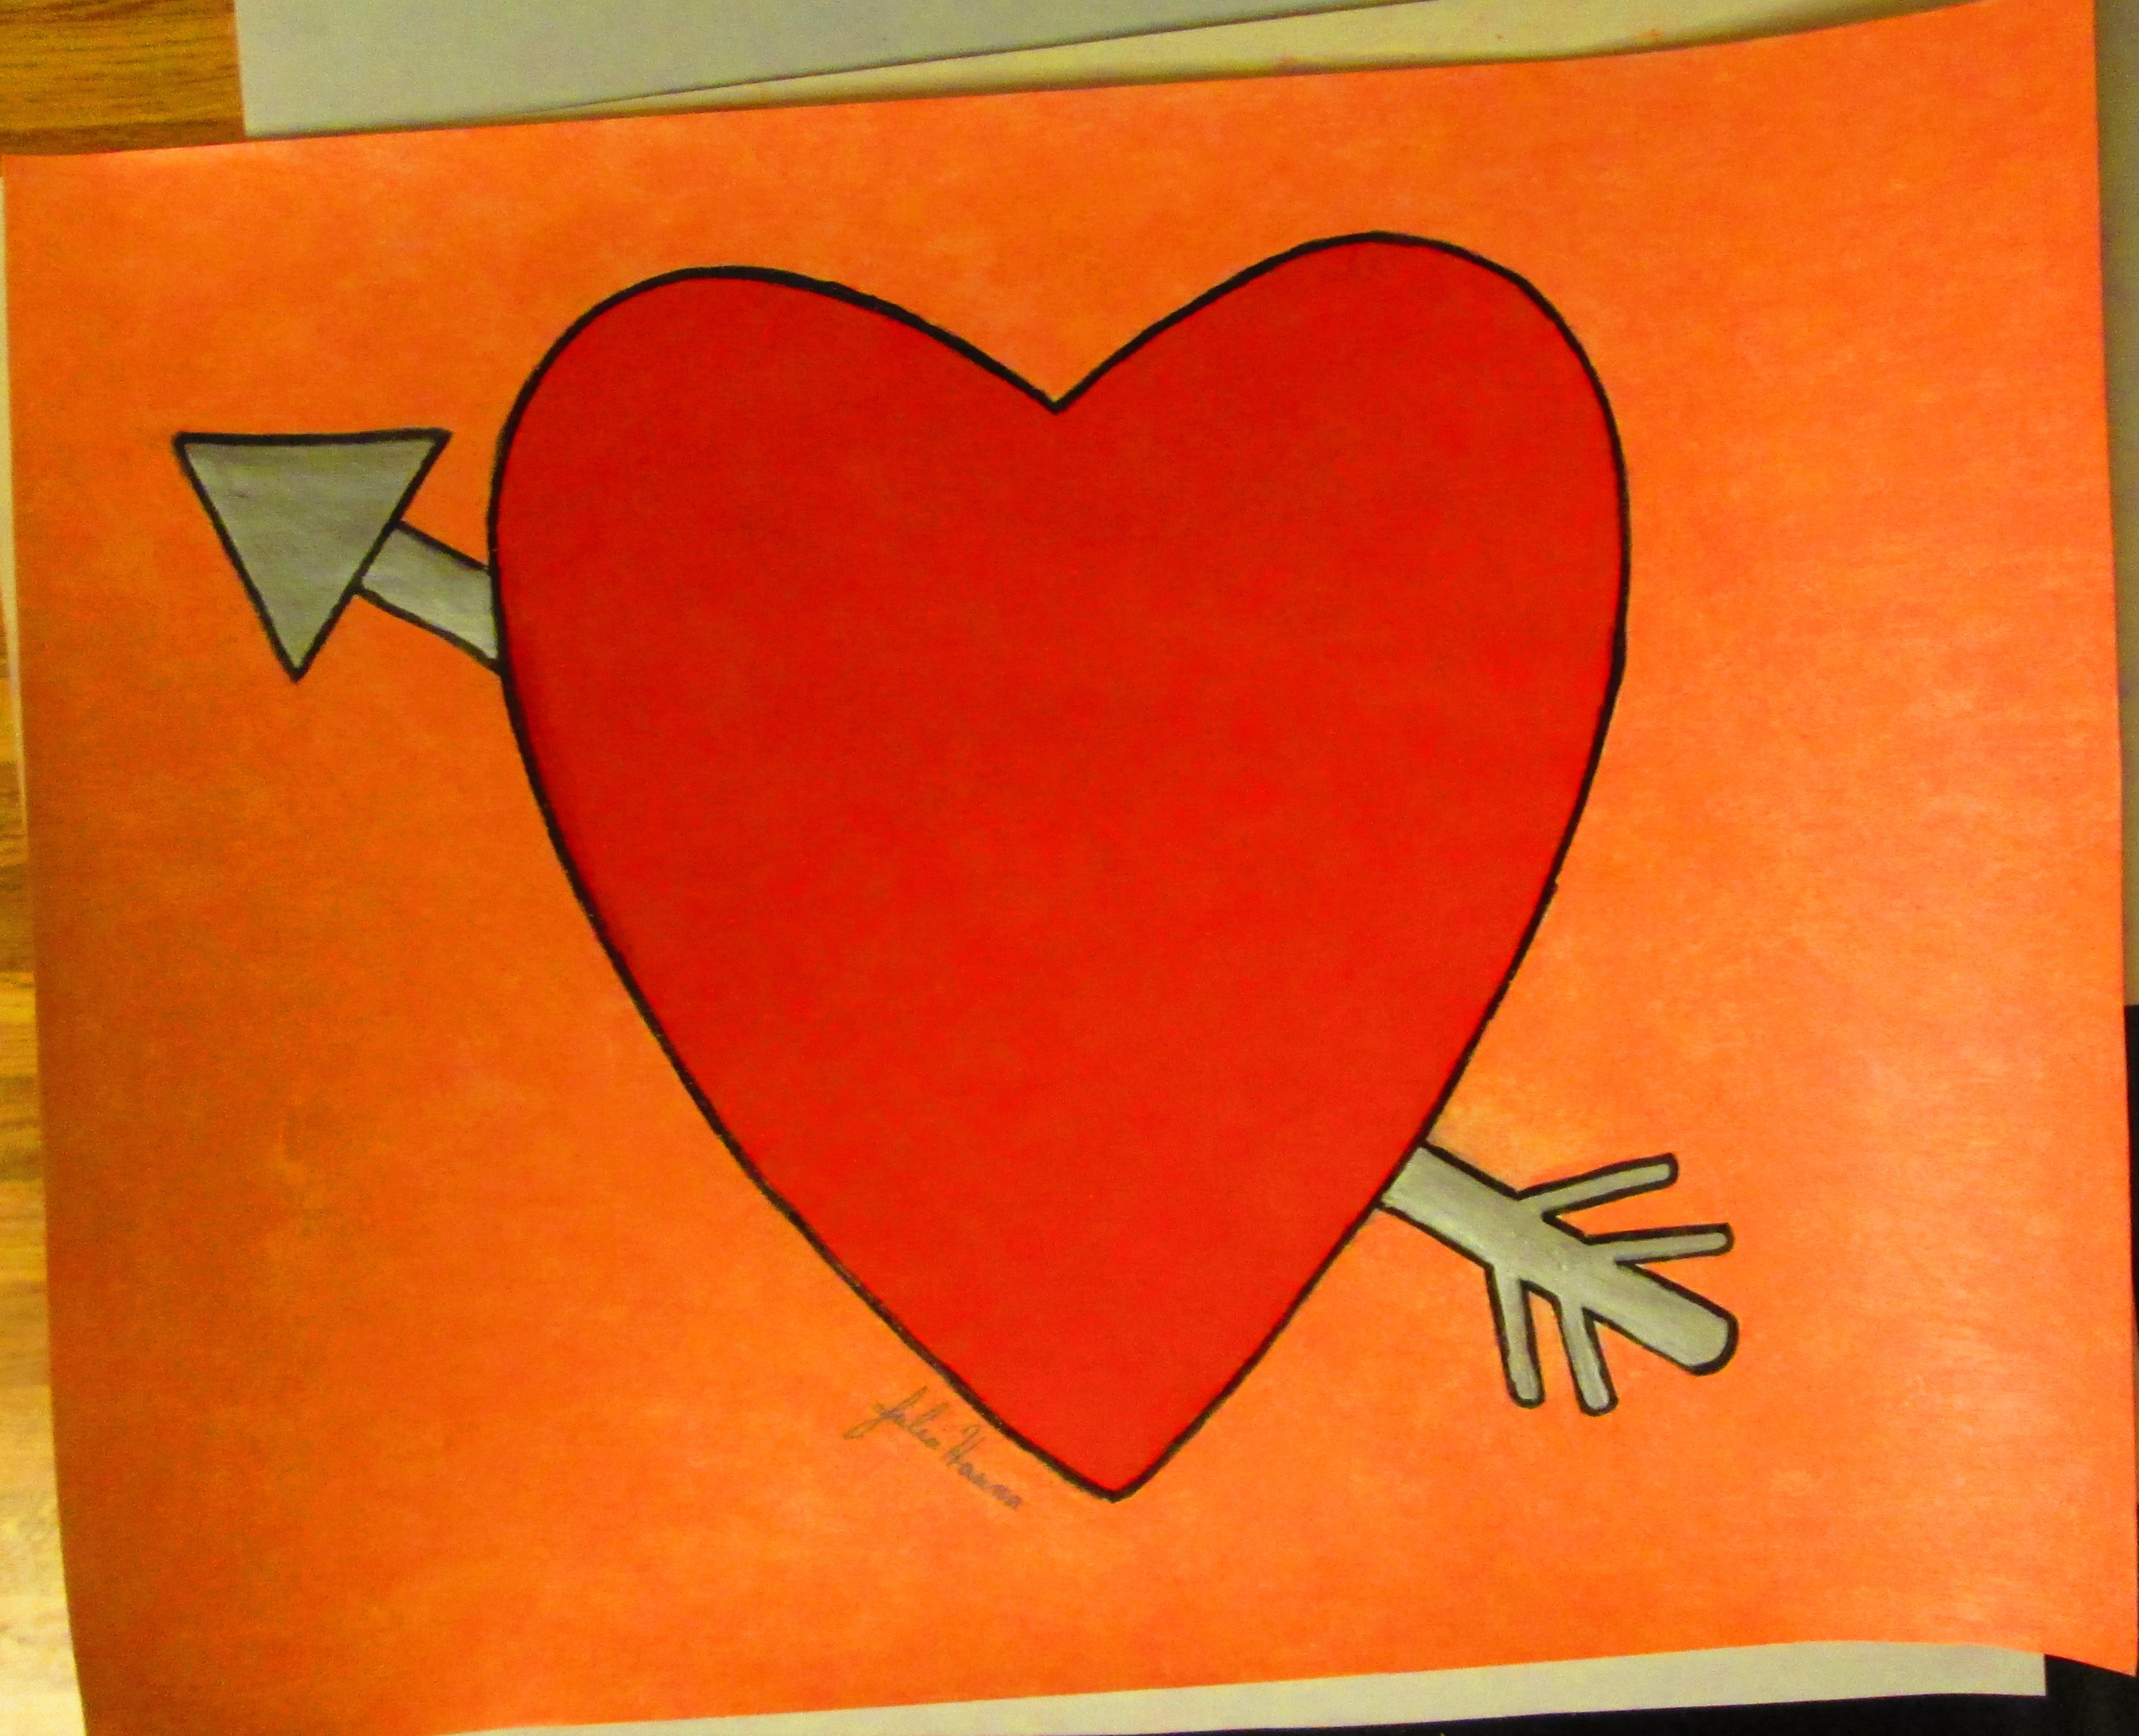 The completed heart and arrow illustration.